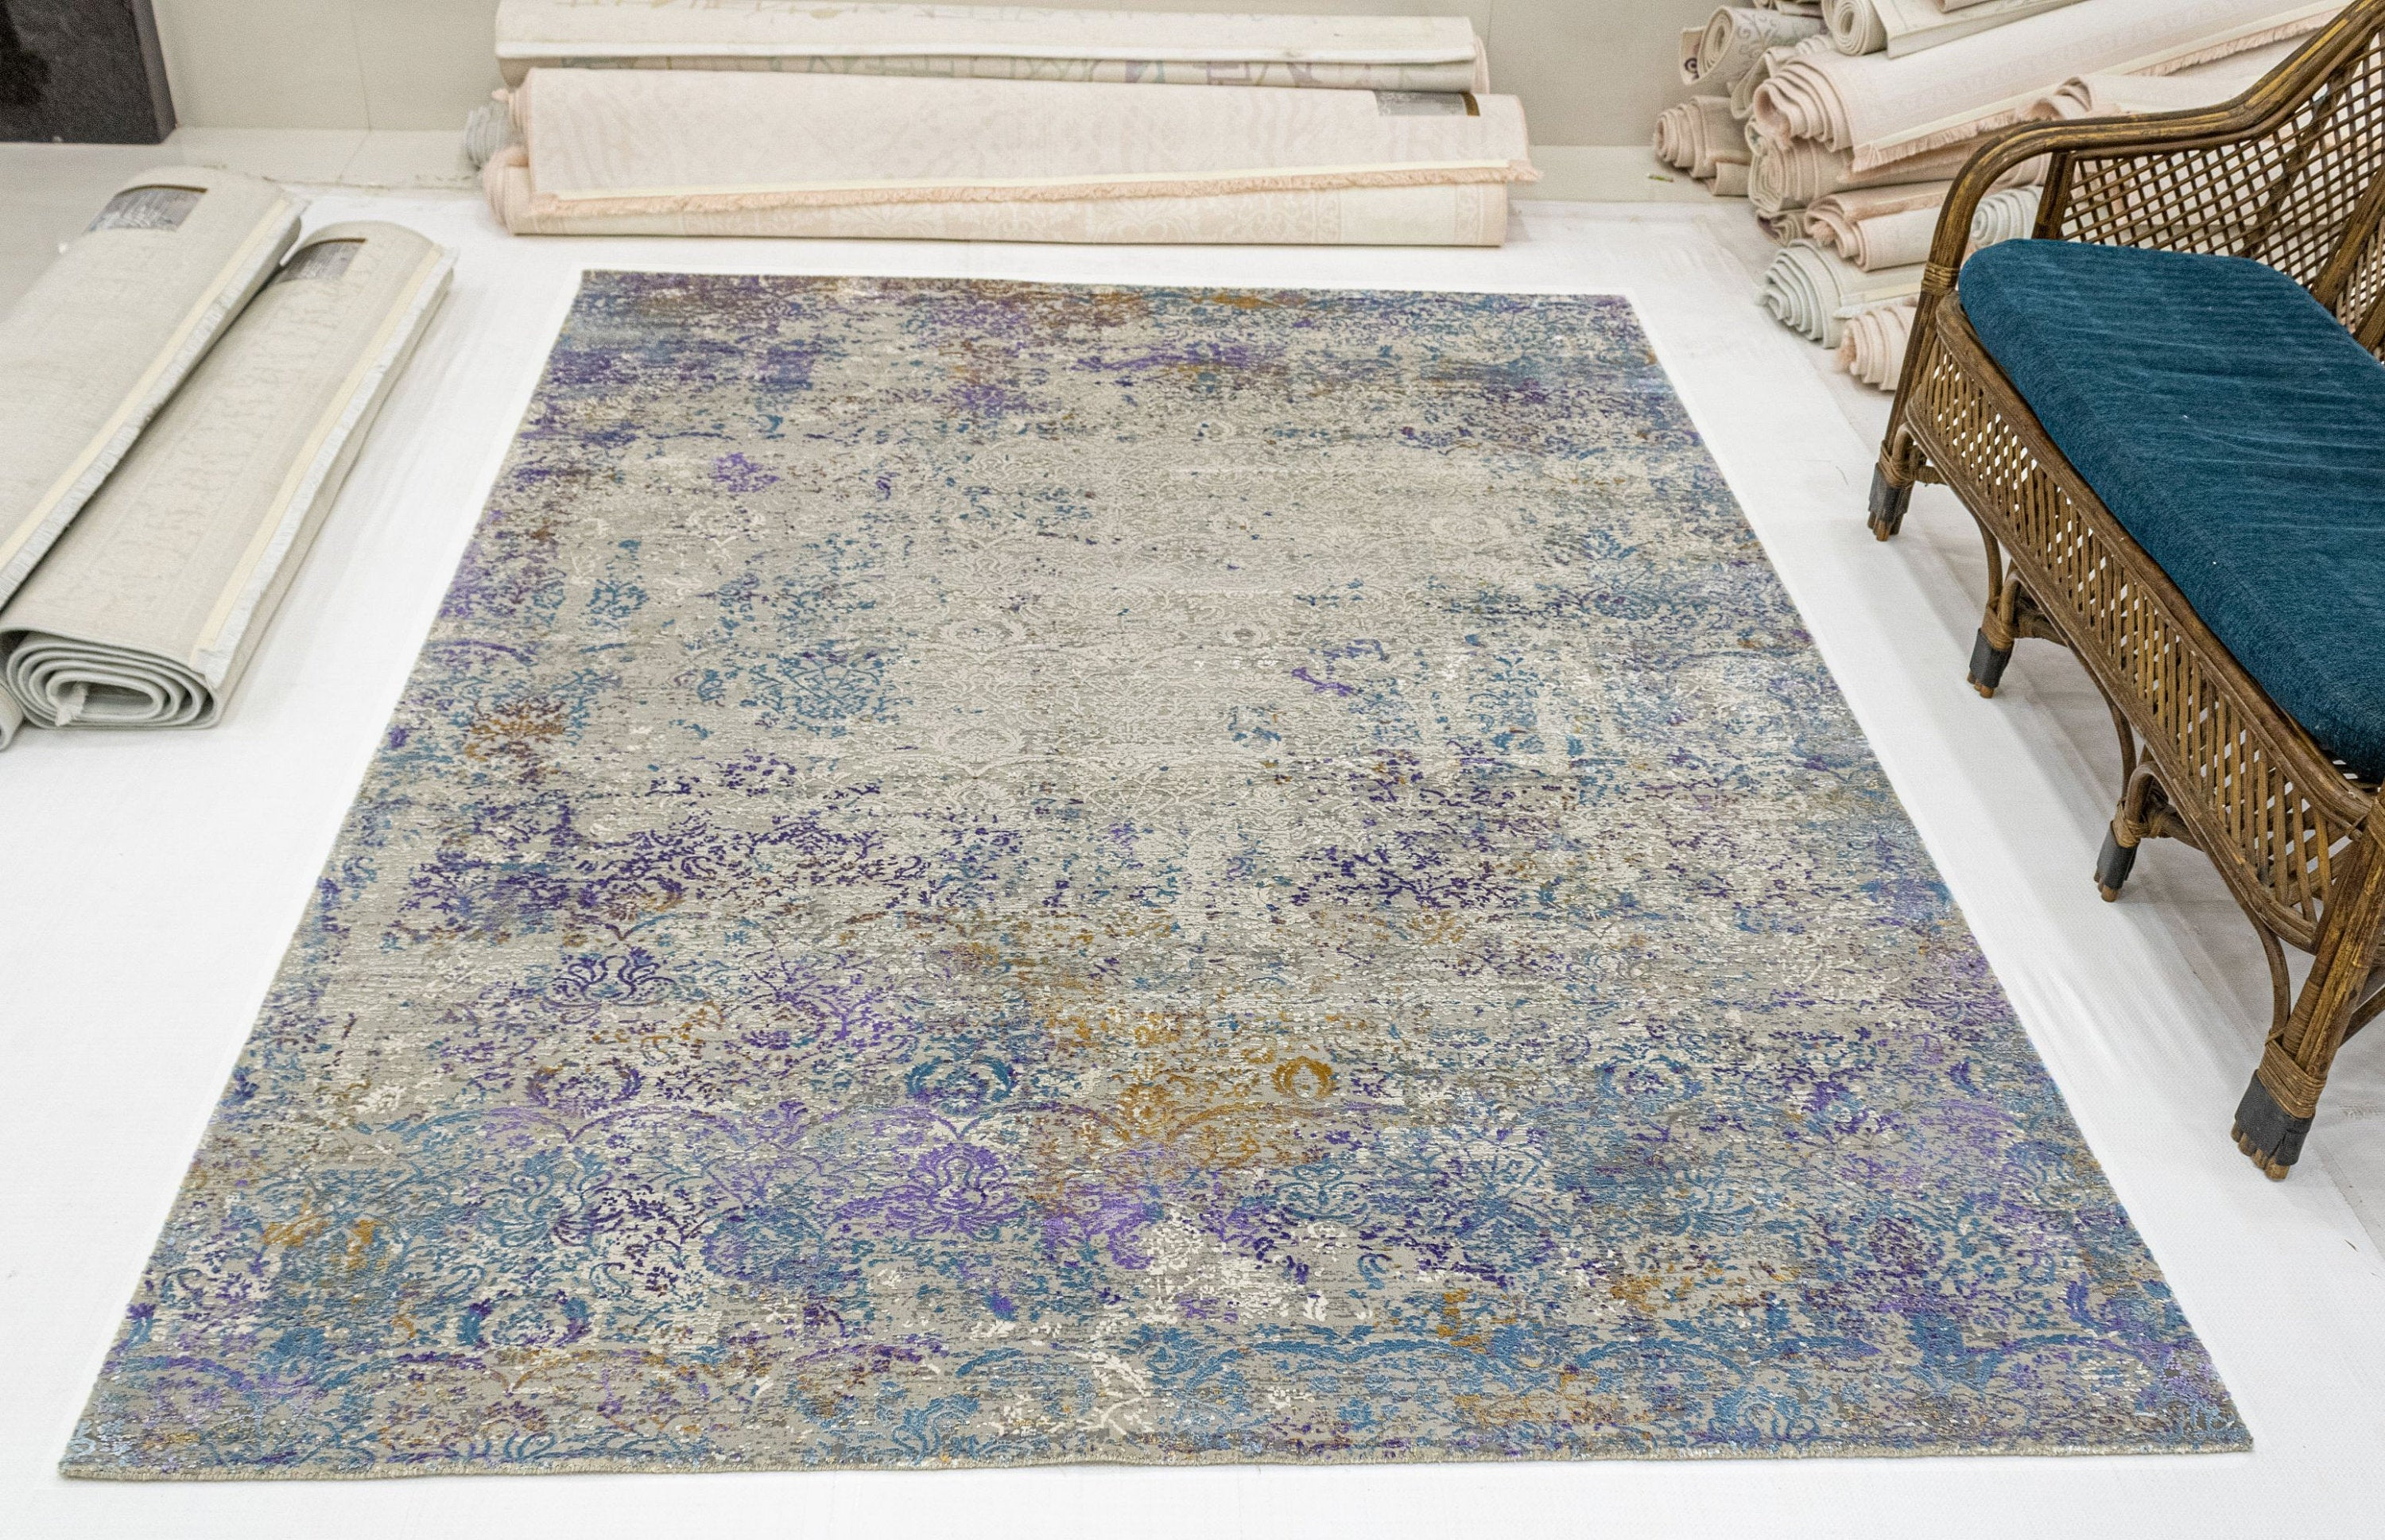 Rustic Geometric Turkish Overdyed Faded Azure Area Rug, Rustic Home Decor Rug,Oriental Living Room Rug, Hand crafted Floral Rug  SKU:1942